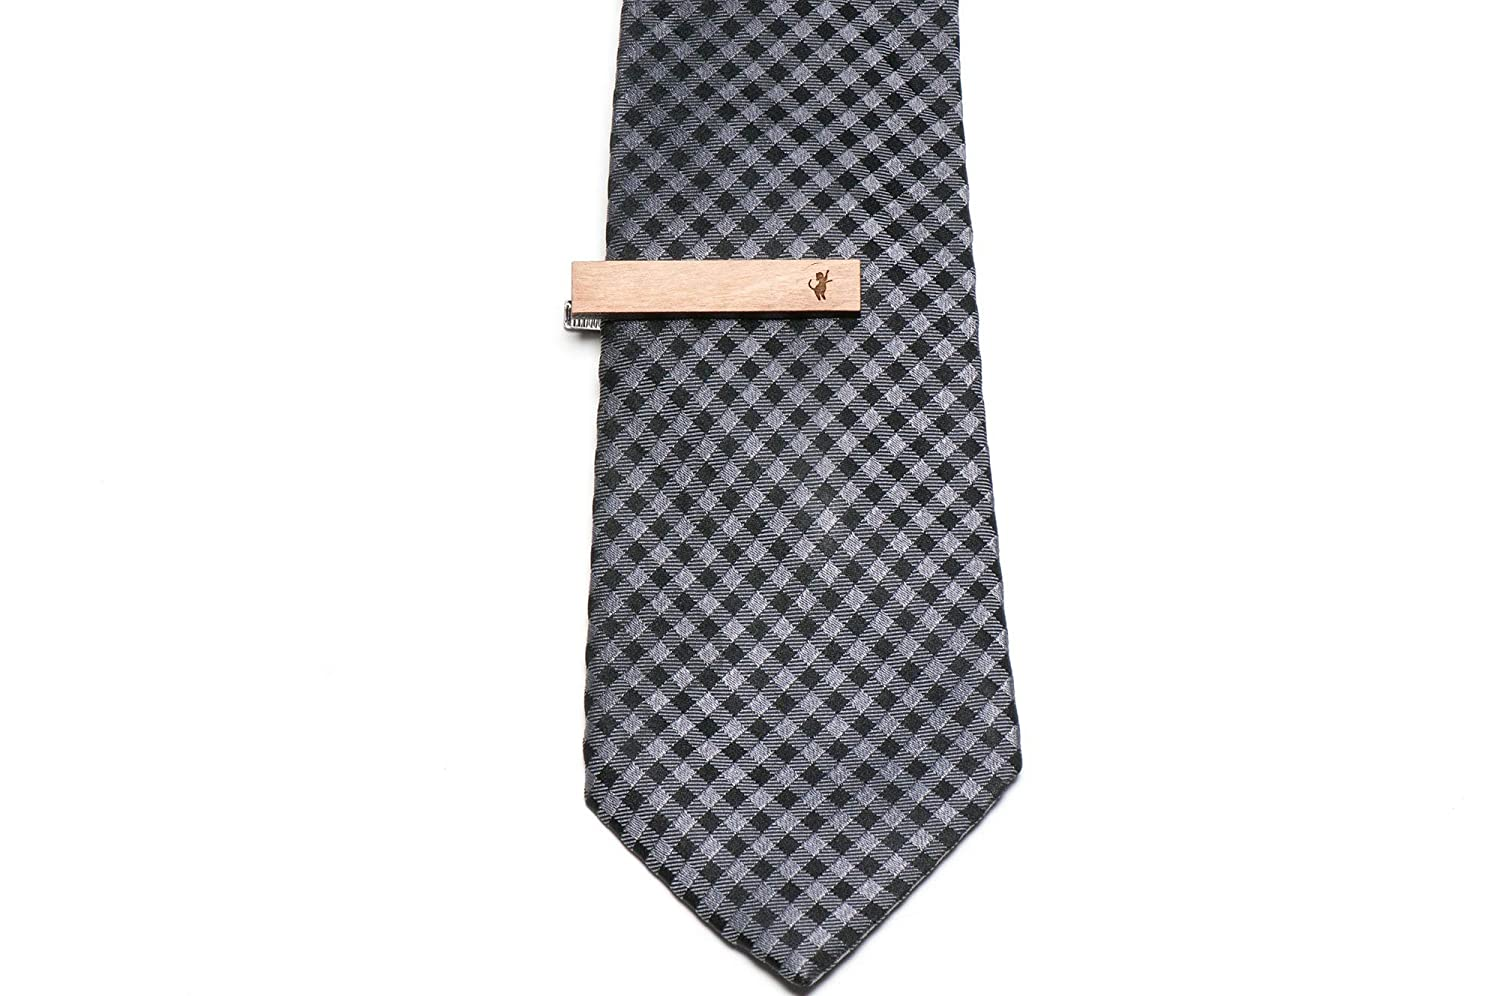 Wooden Accessories Company Wooden Tie Clips with Laser Engraved Playful Cat Design Cherry Wood Tie Bar Engraved in The USA